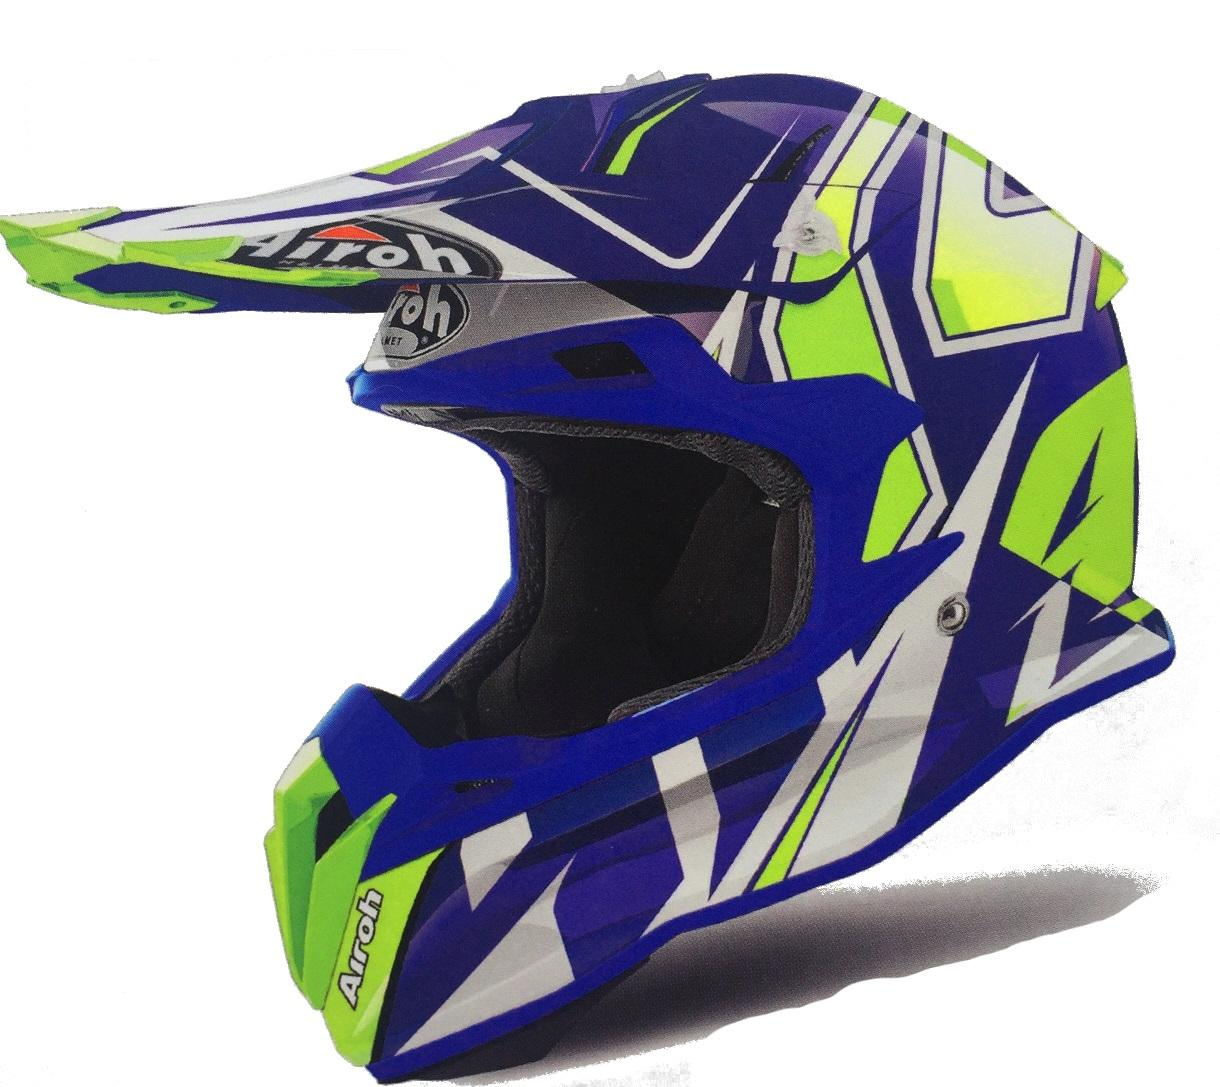 CASCO MOTO CROSS AIROH TERMINATOR 2018 SHOCK BLUE GLOSS TOVSH18